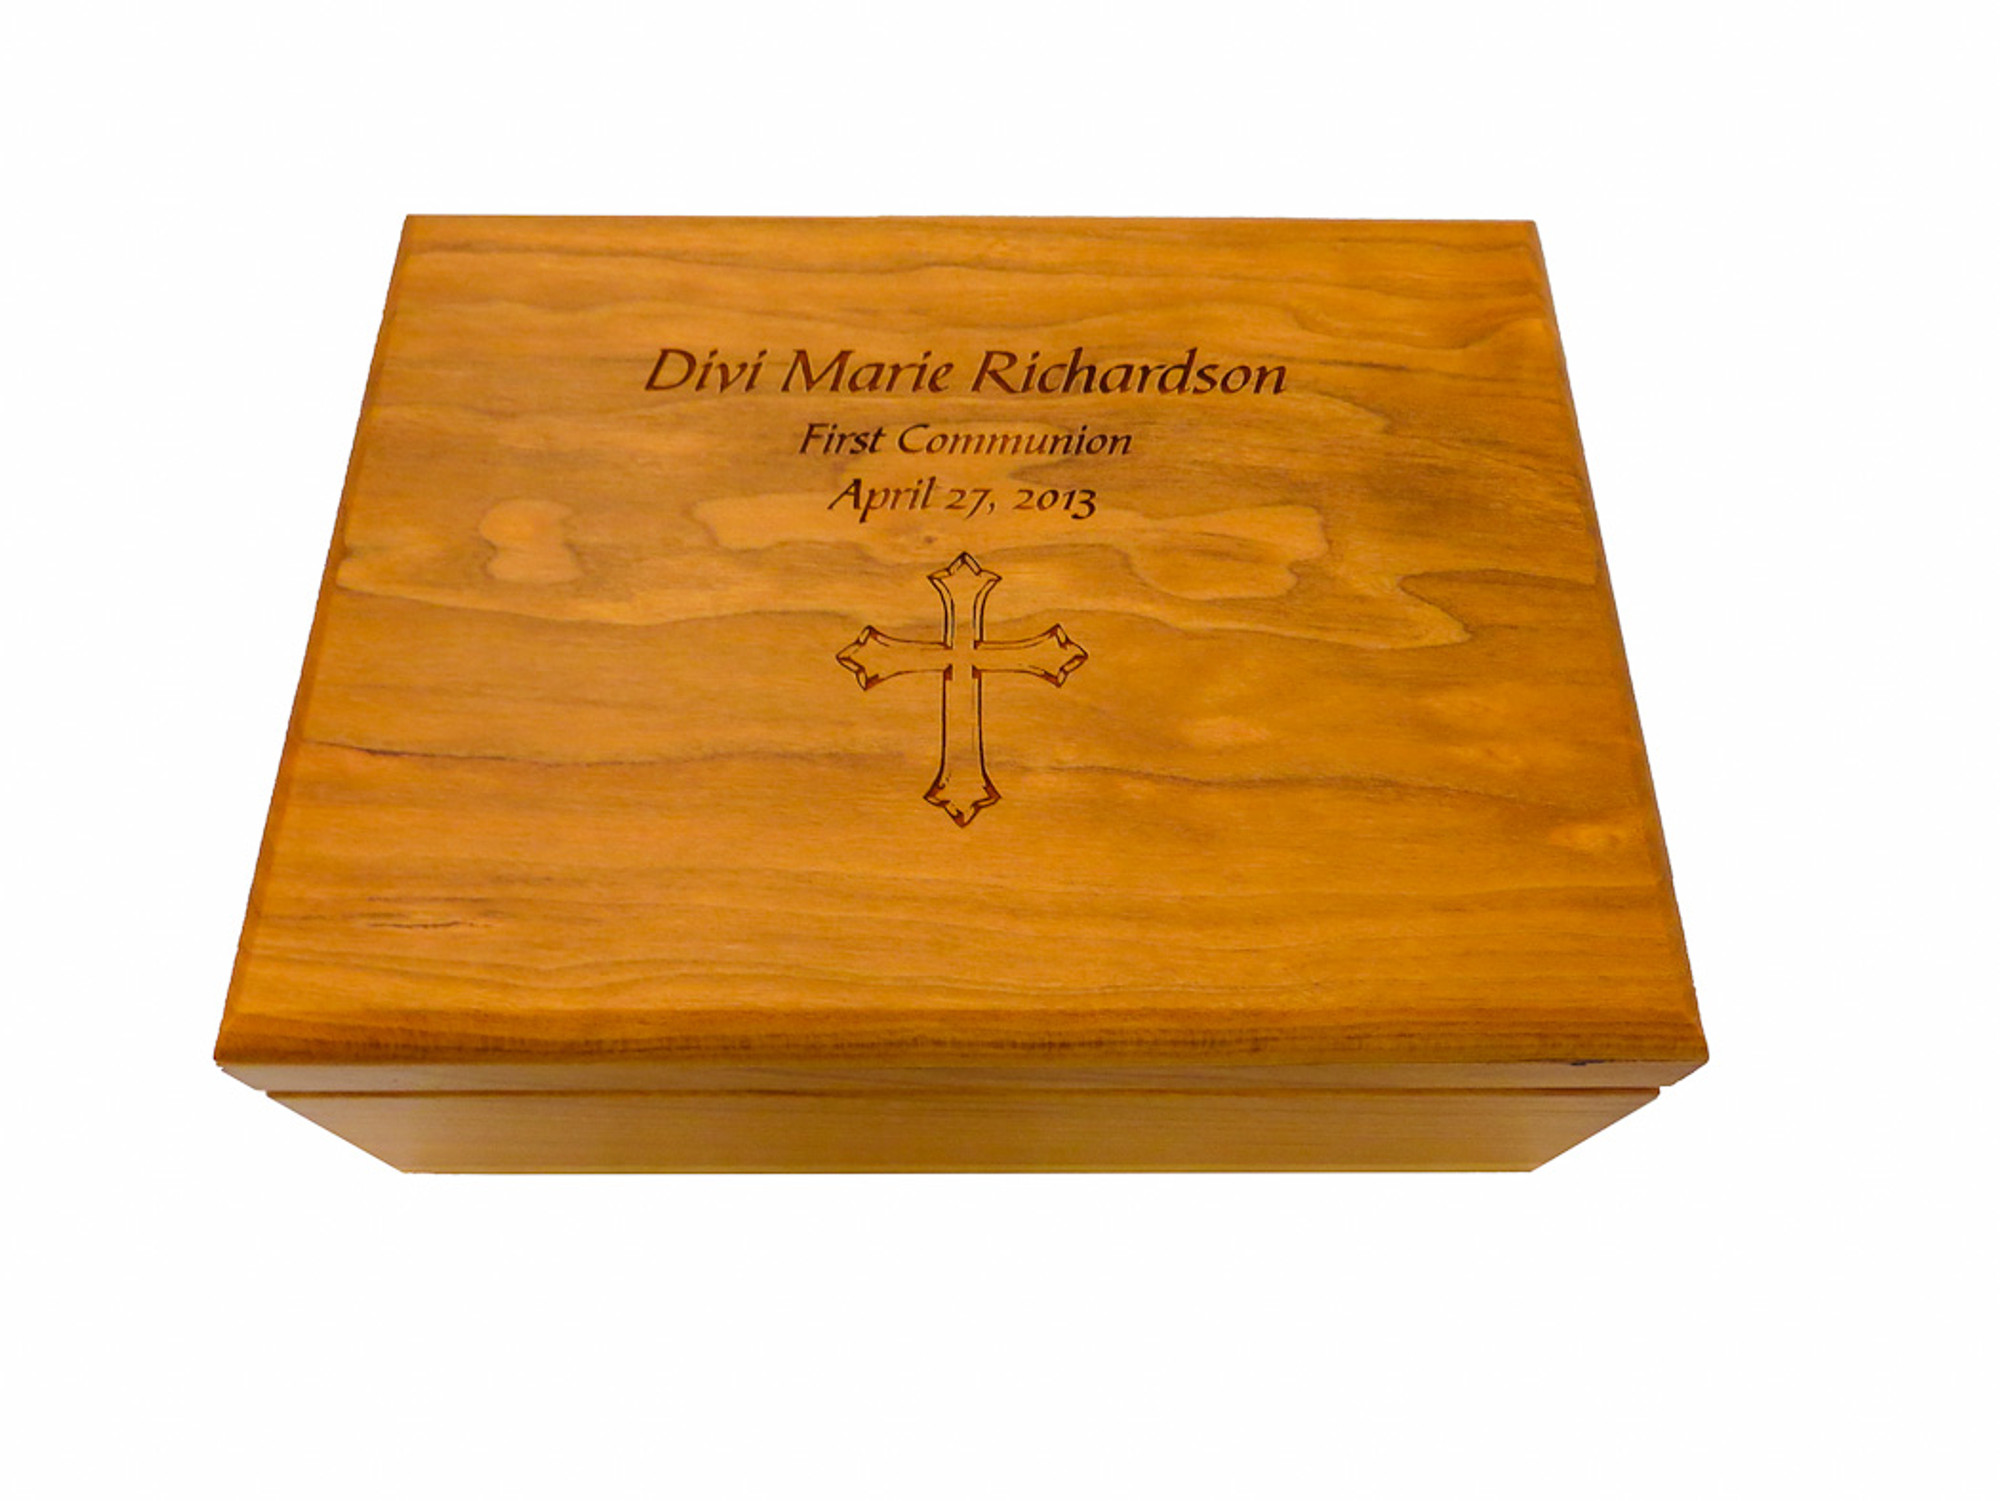 A Custom Laser Engraved Wood Box Can Make Fantastic First Communion Gift